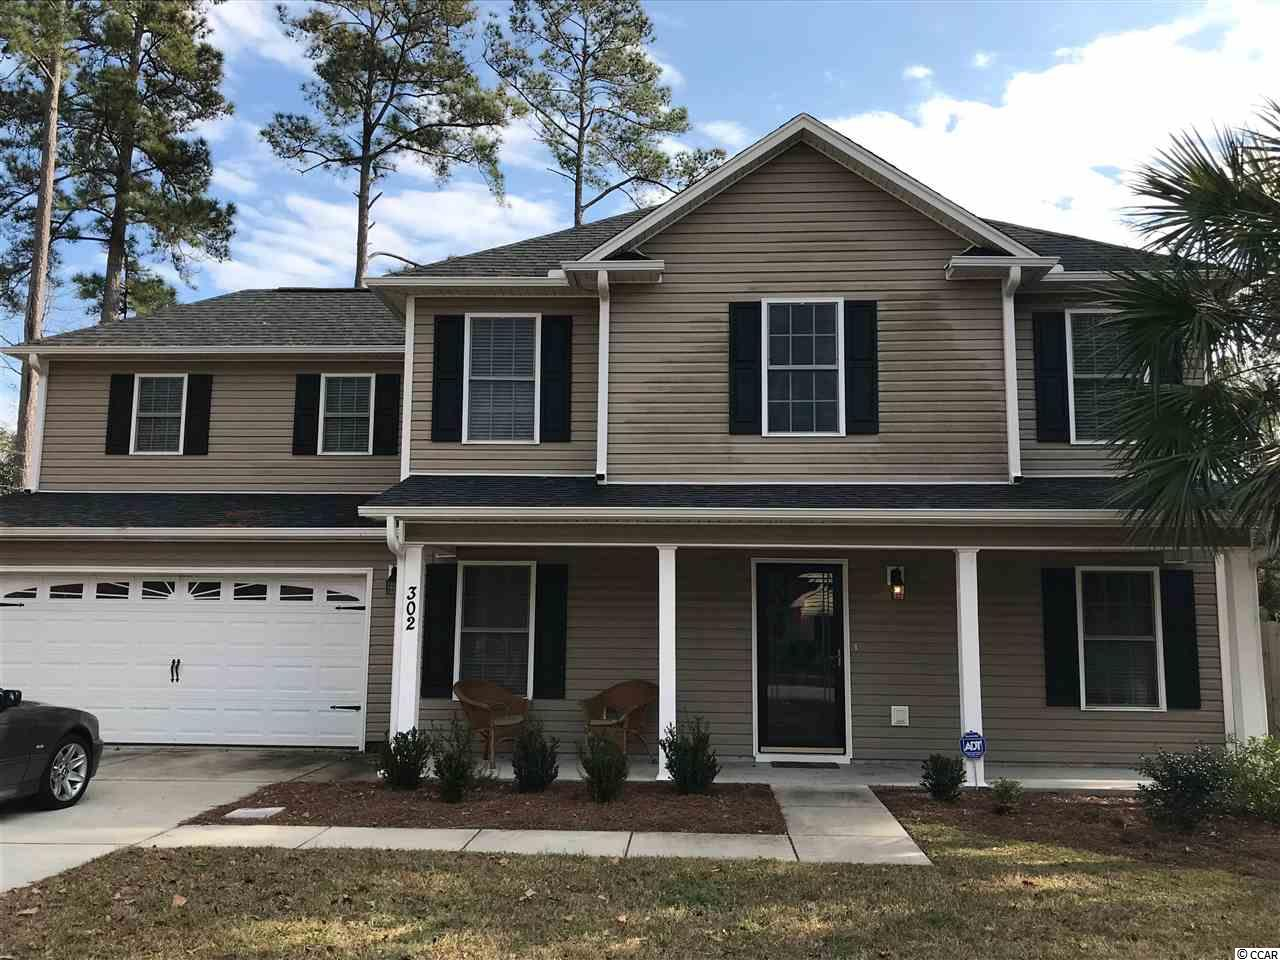 Single Family Home for Sale at 302 STRATFORD 302 STRATFORD Murrells Inlet, South Carolina 29576 United States